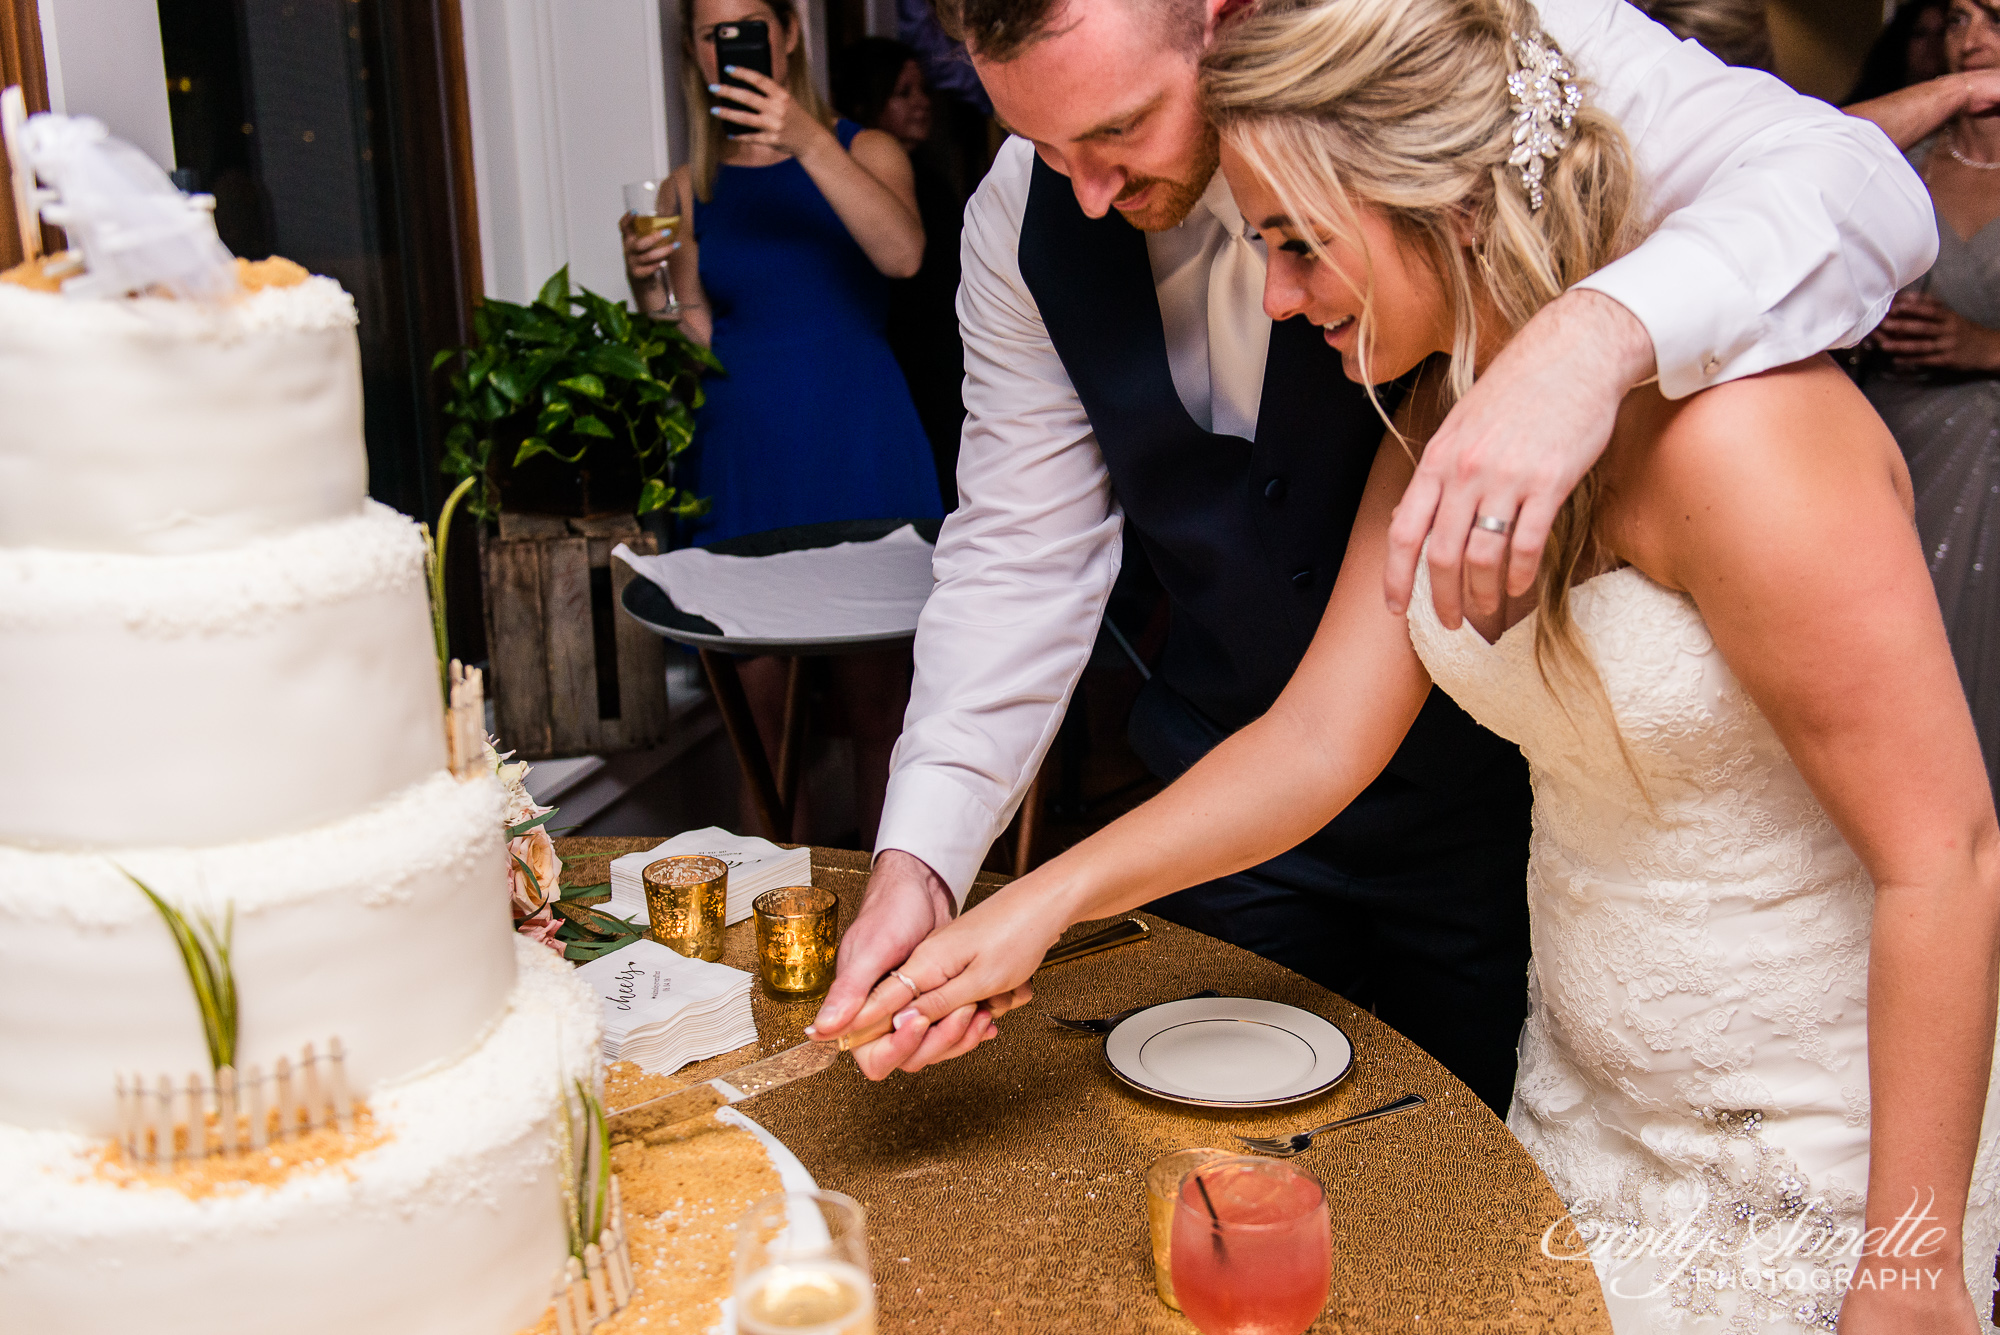 A bride and groom cut their wedding cake during their reception at Herrington on the Bay in North Beach, Maryland